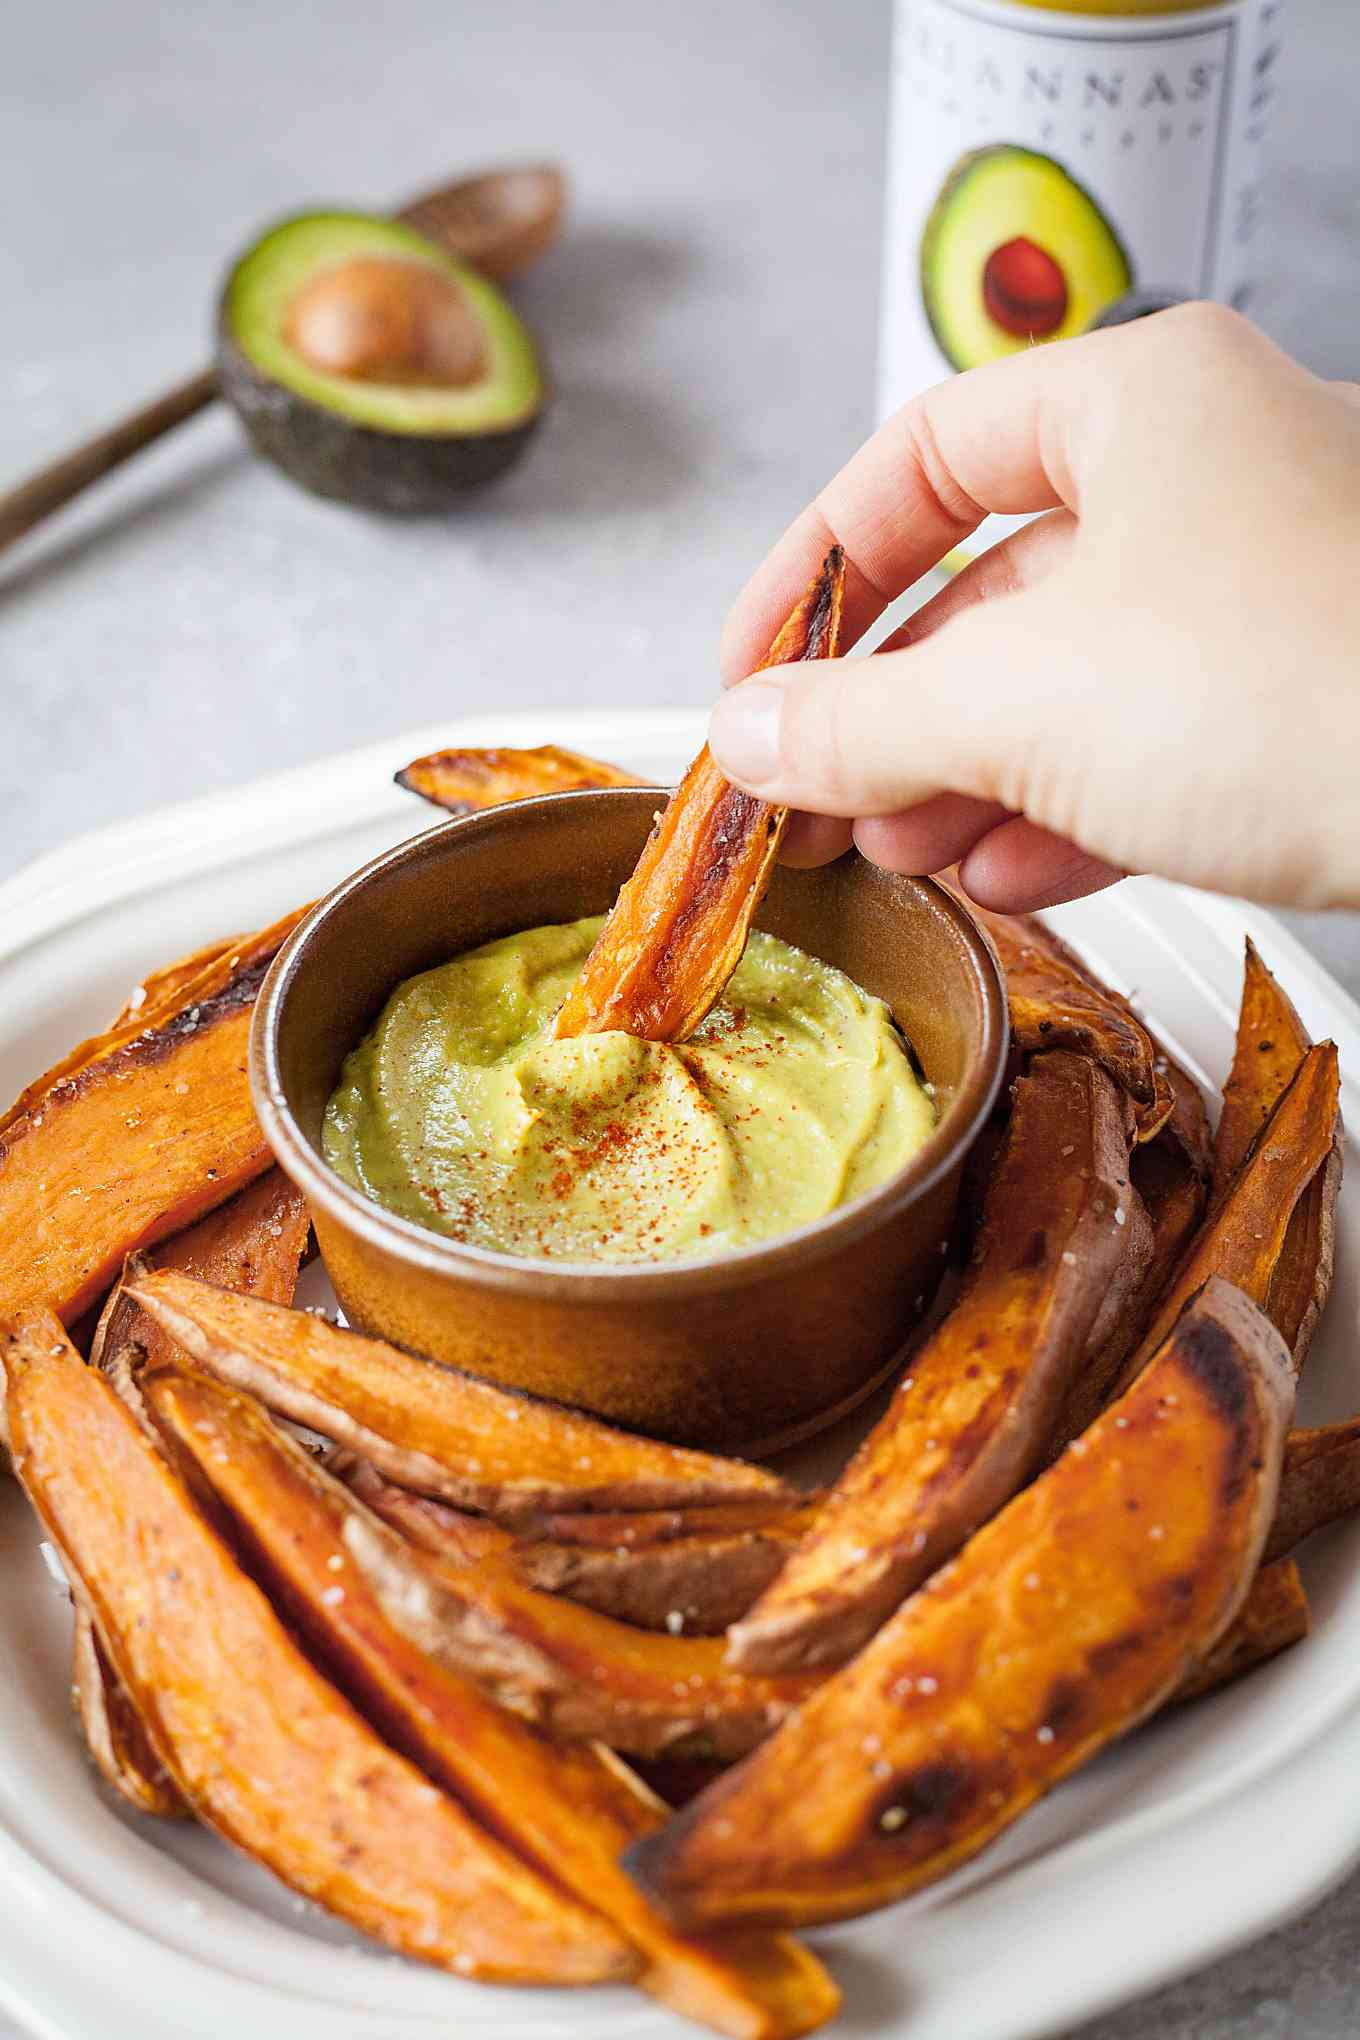 image of hand dipping sweet potato fry in spicy mustard